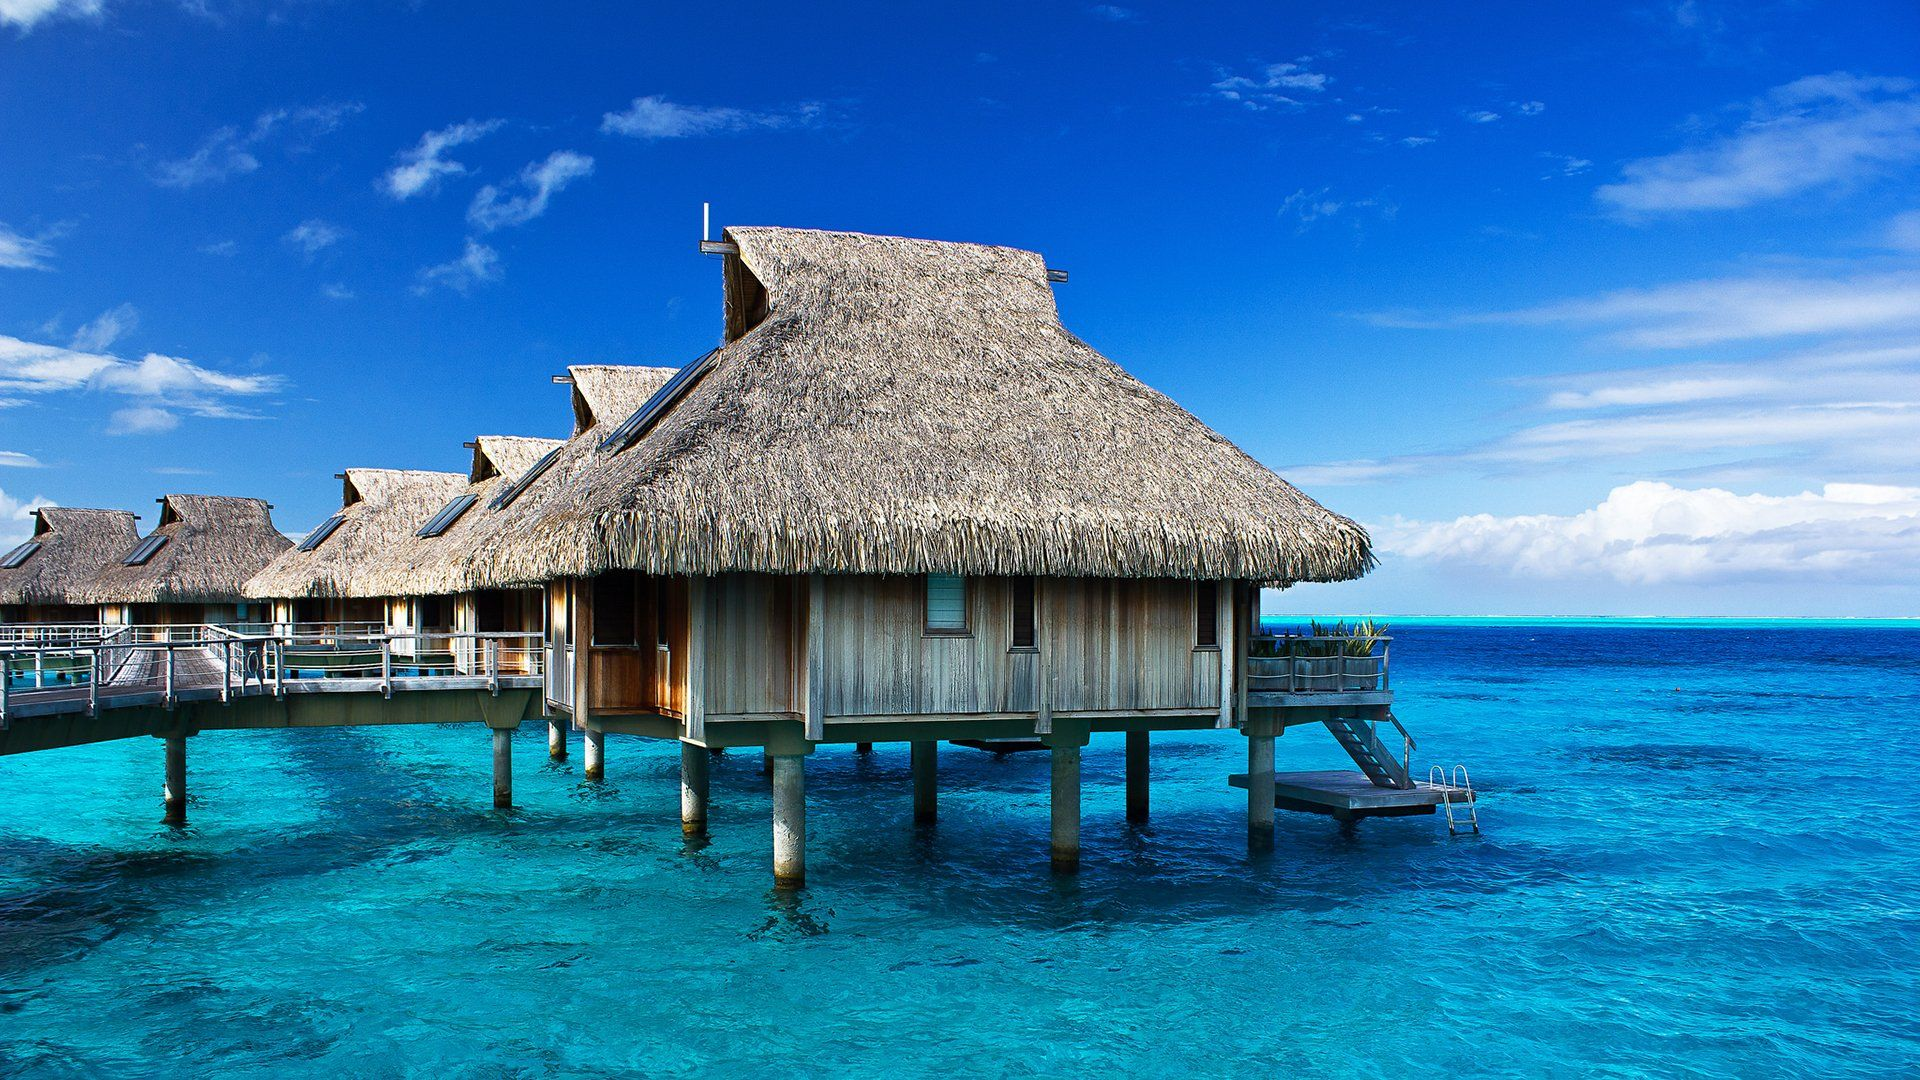 Tropical Hut Resort Ocean Wallpaper